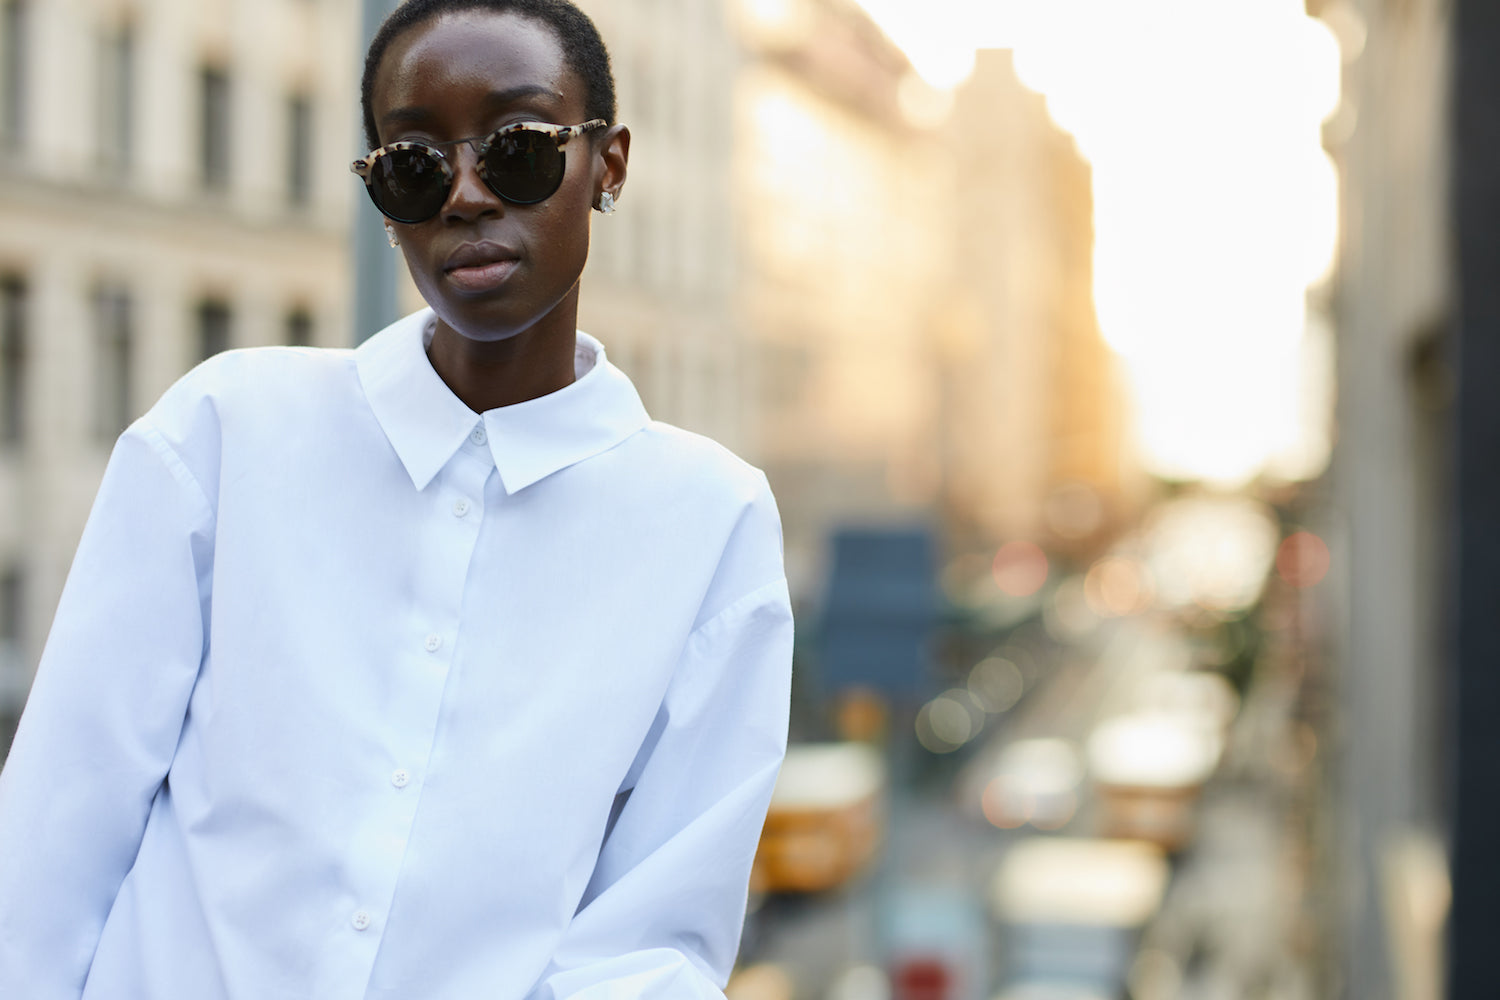 Split Infinitive white shirt by Grammar NYC sustainable fashion organic cotton